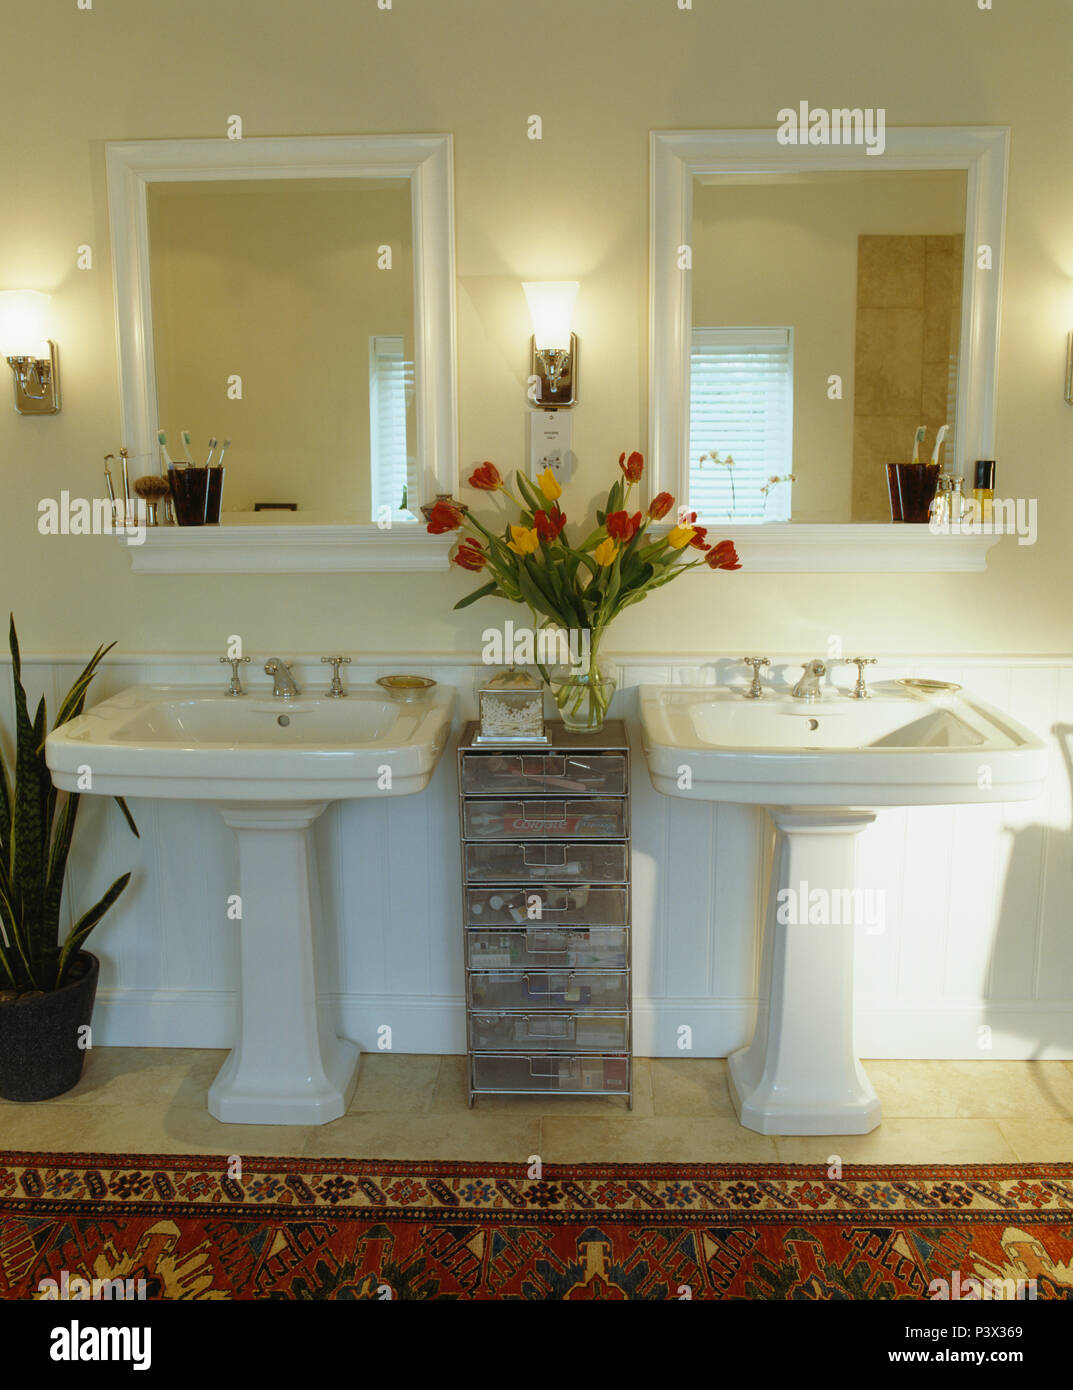 Mirrors above double pedestal basins on either side of narrow galvanised metal drawers in contemporary bathroom - Stock Image